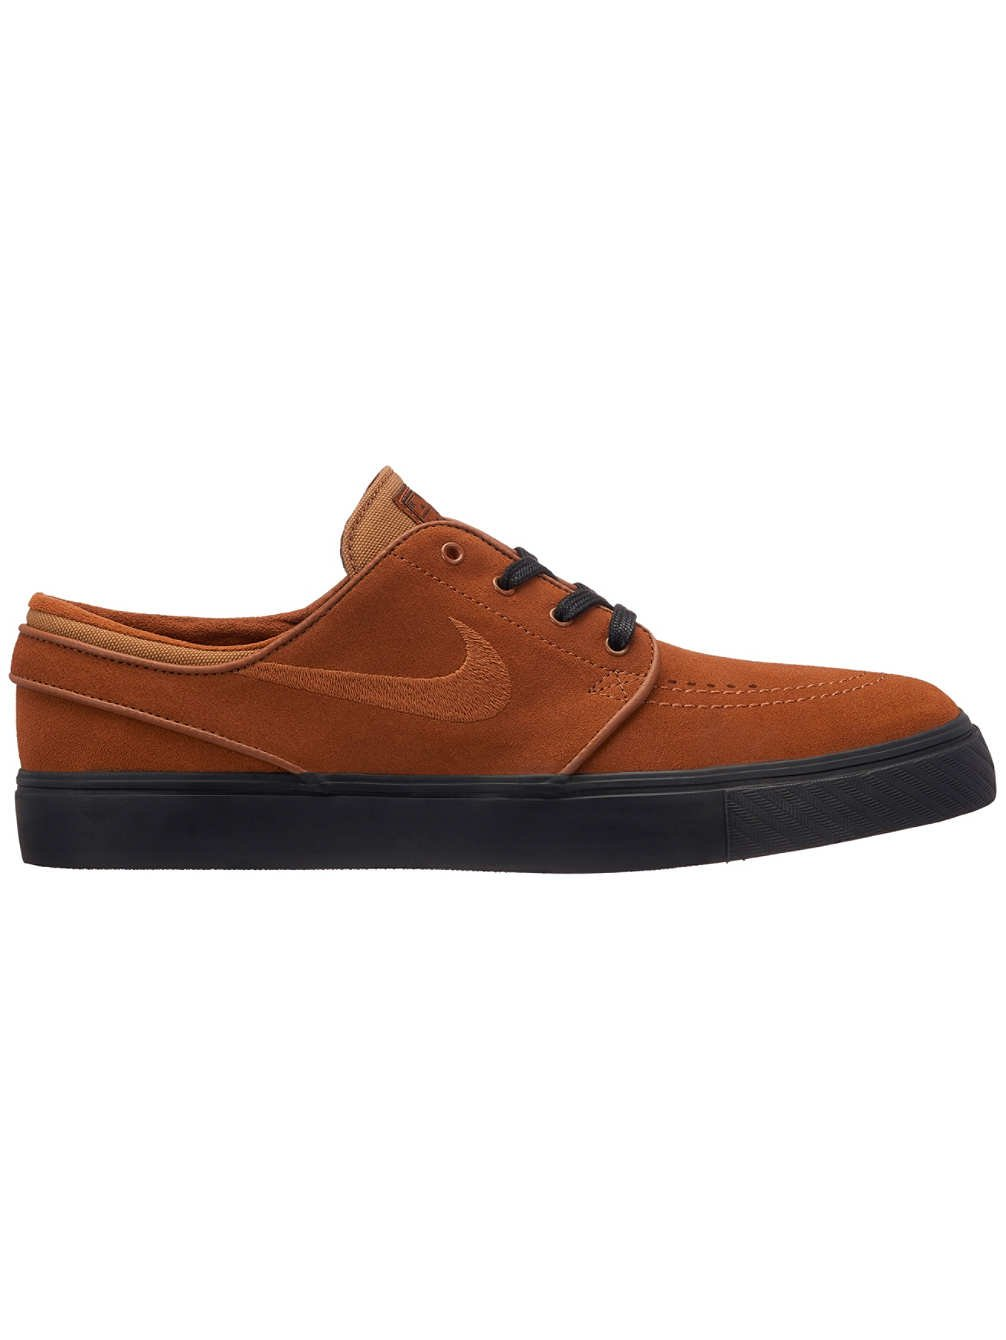 3b5576974c Galleon - Nike - Zoom Stefan Janoski - 333824218 - Color  Brown - Size  8.5